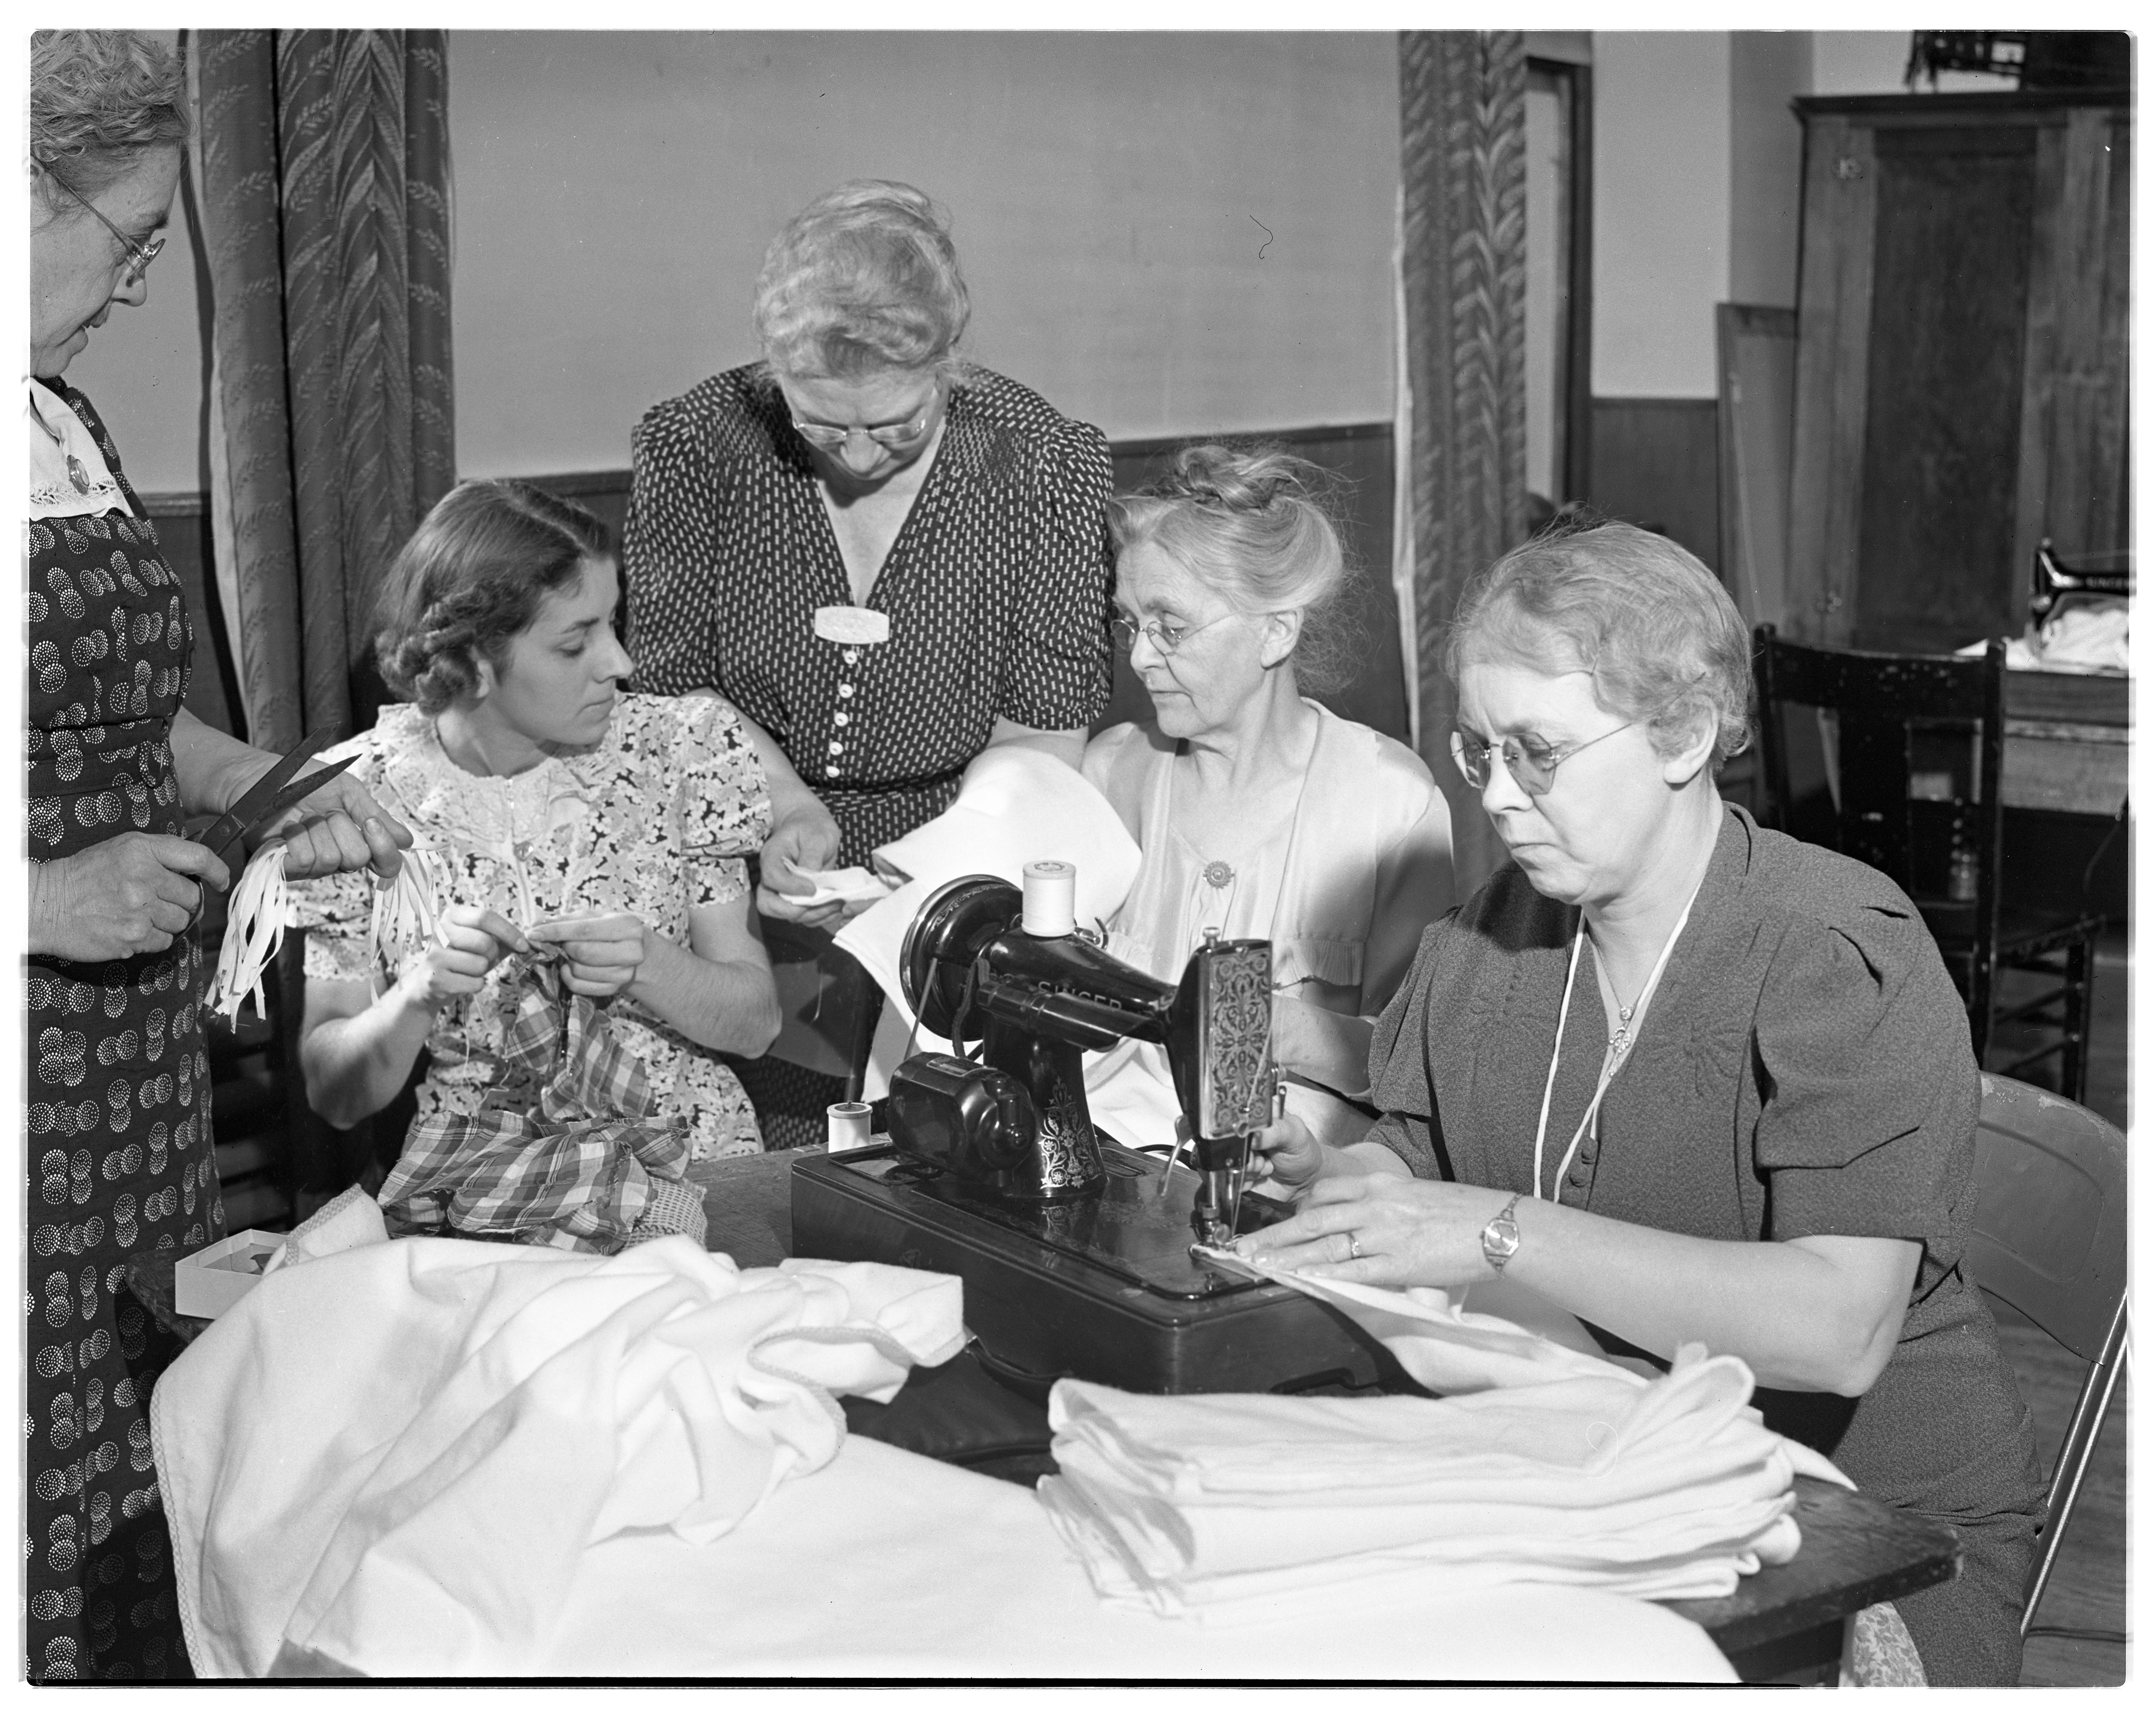 Red Cross: Sewing at Methodist Church, December 1939 image